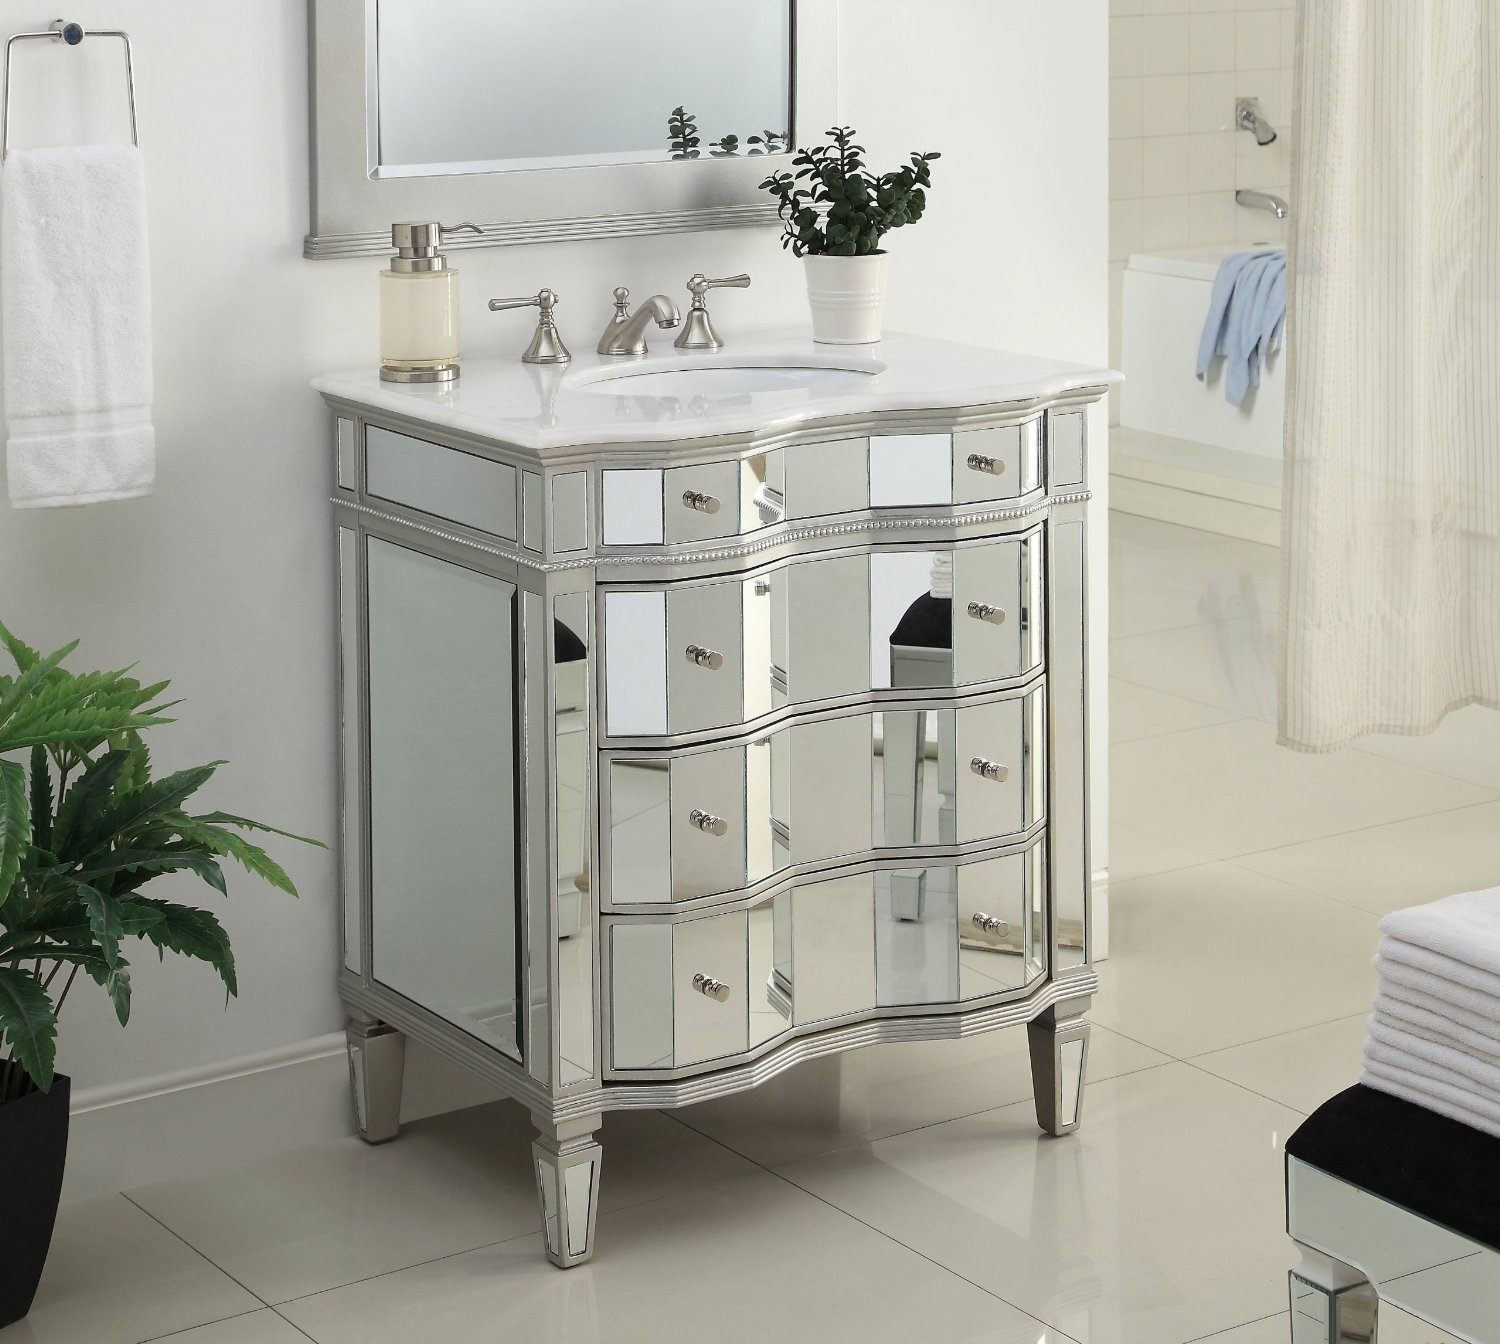 30 inch Adelina Mirrored Bathroom Vanity White Marble Top